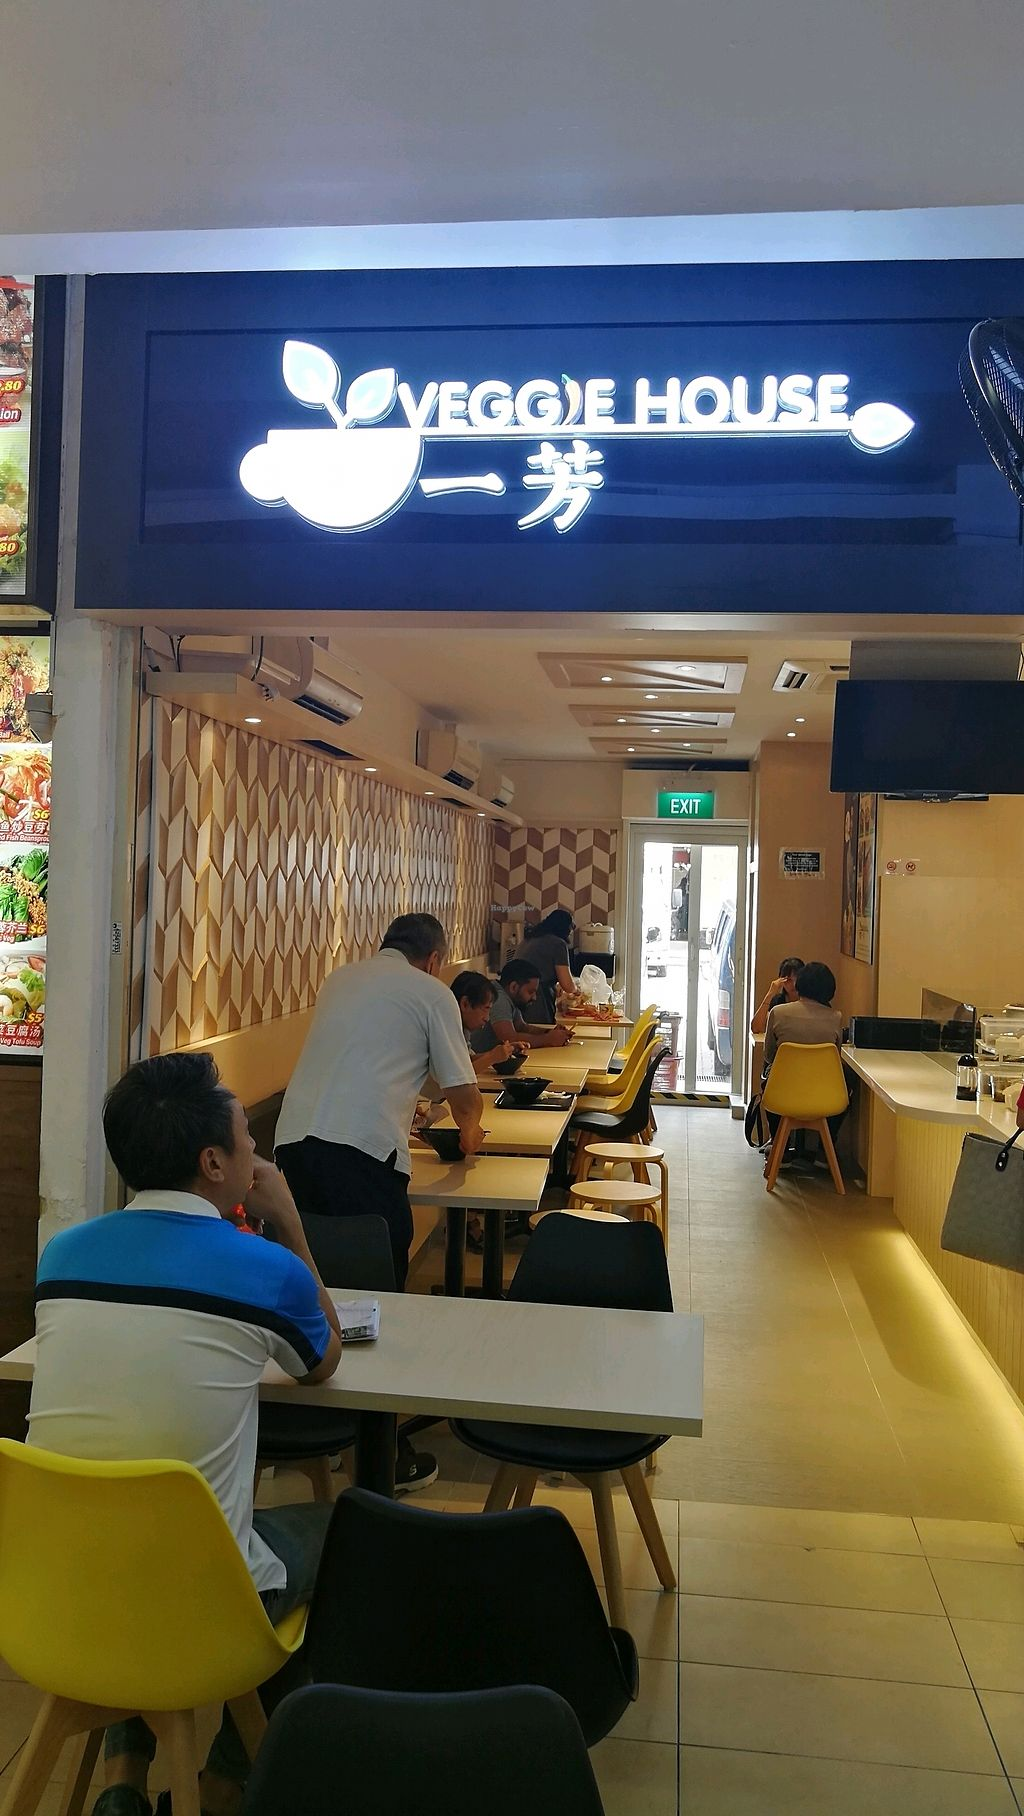 """Photo of Veggie House - Toa Payoh  by <a href=""""/members/profile/JunXuan"""">JunXuan</a> <br/>exterior of shop <br/> February 7, 2018  - <a href='/contact/abuse/image/111216/355926'>Report</a>"""